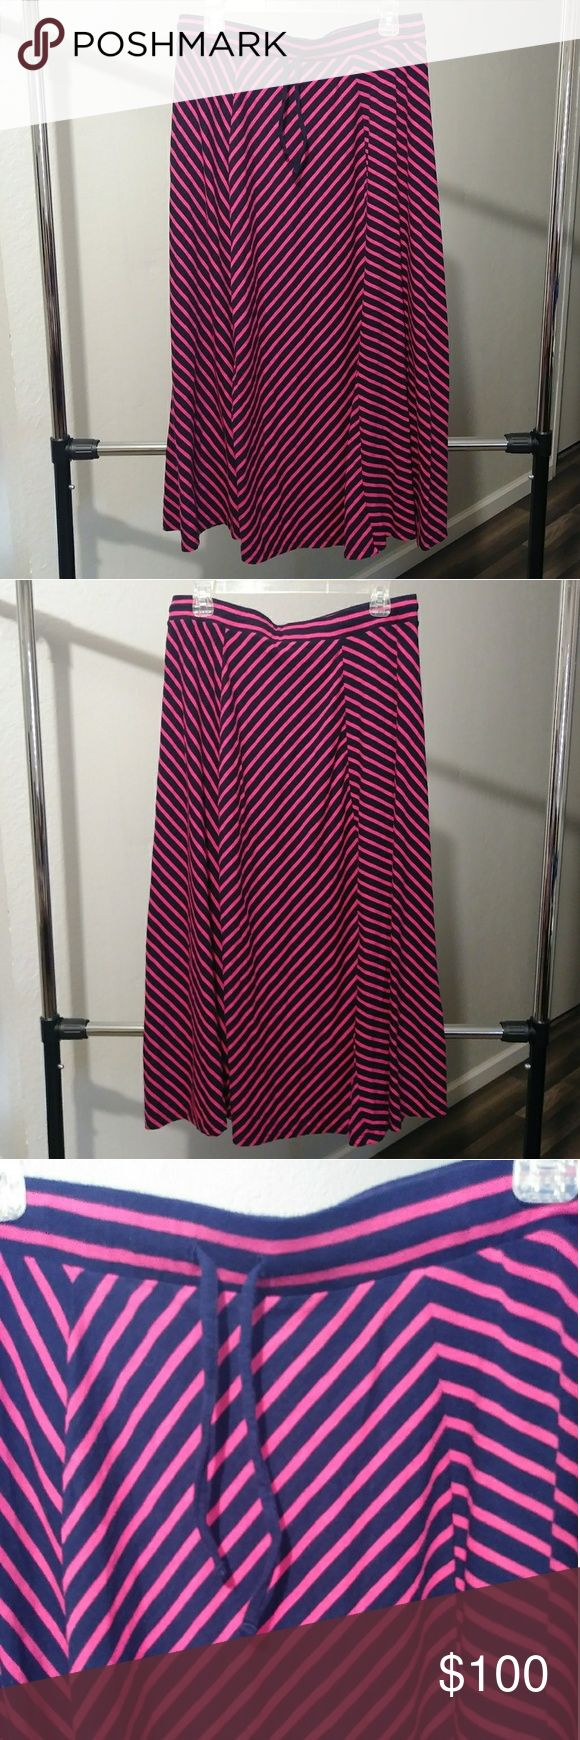 Talbots Striped Long Skirt Brand: Talbots Size: L (but can fit larger)  Navy blue and pink stripe full long skirt with drawstring front waistband. Size is L but can fit up to 1X comfortably. Talbots Skirts